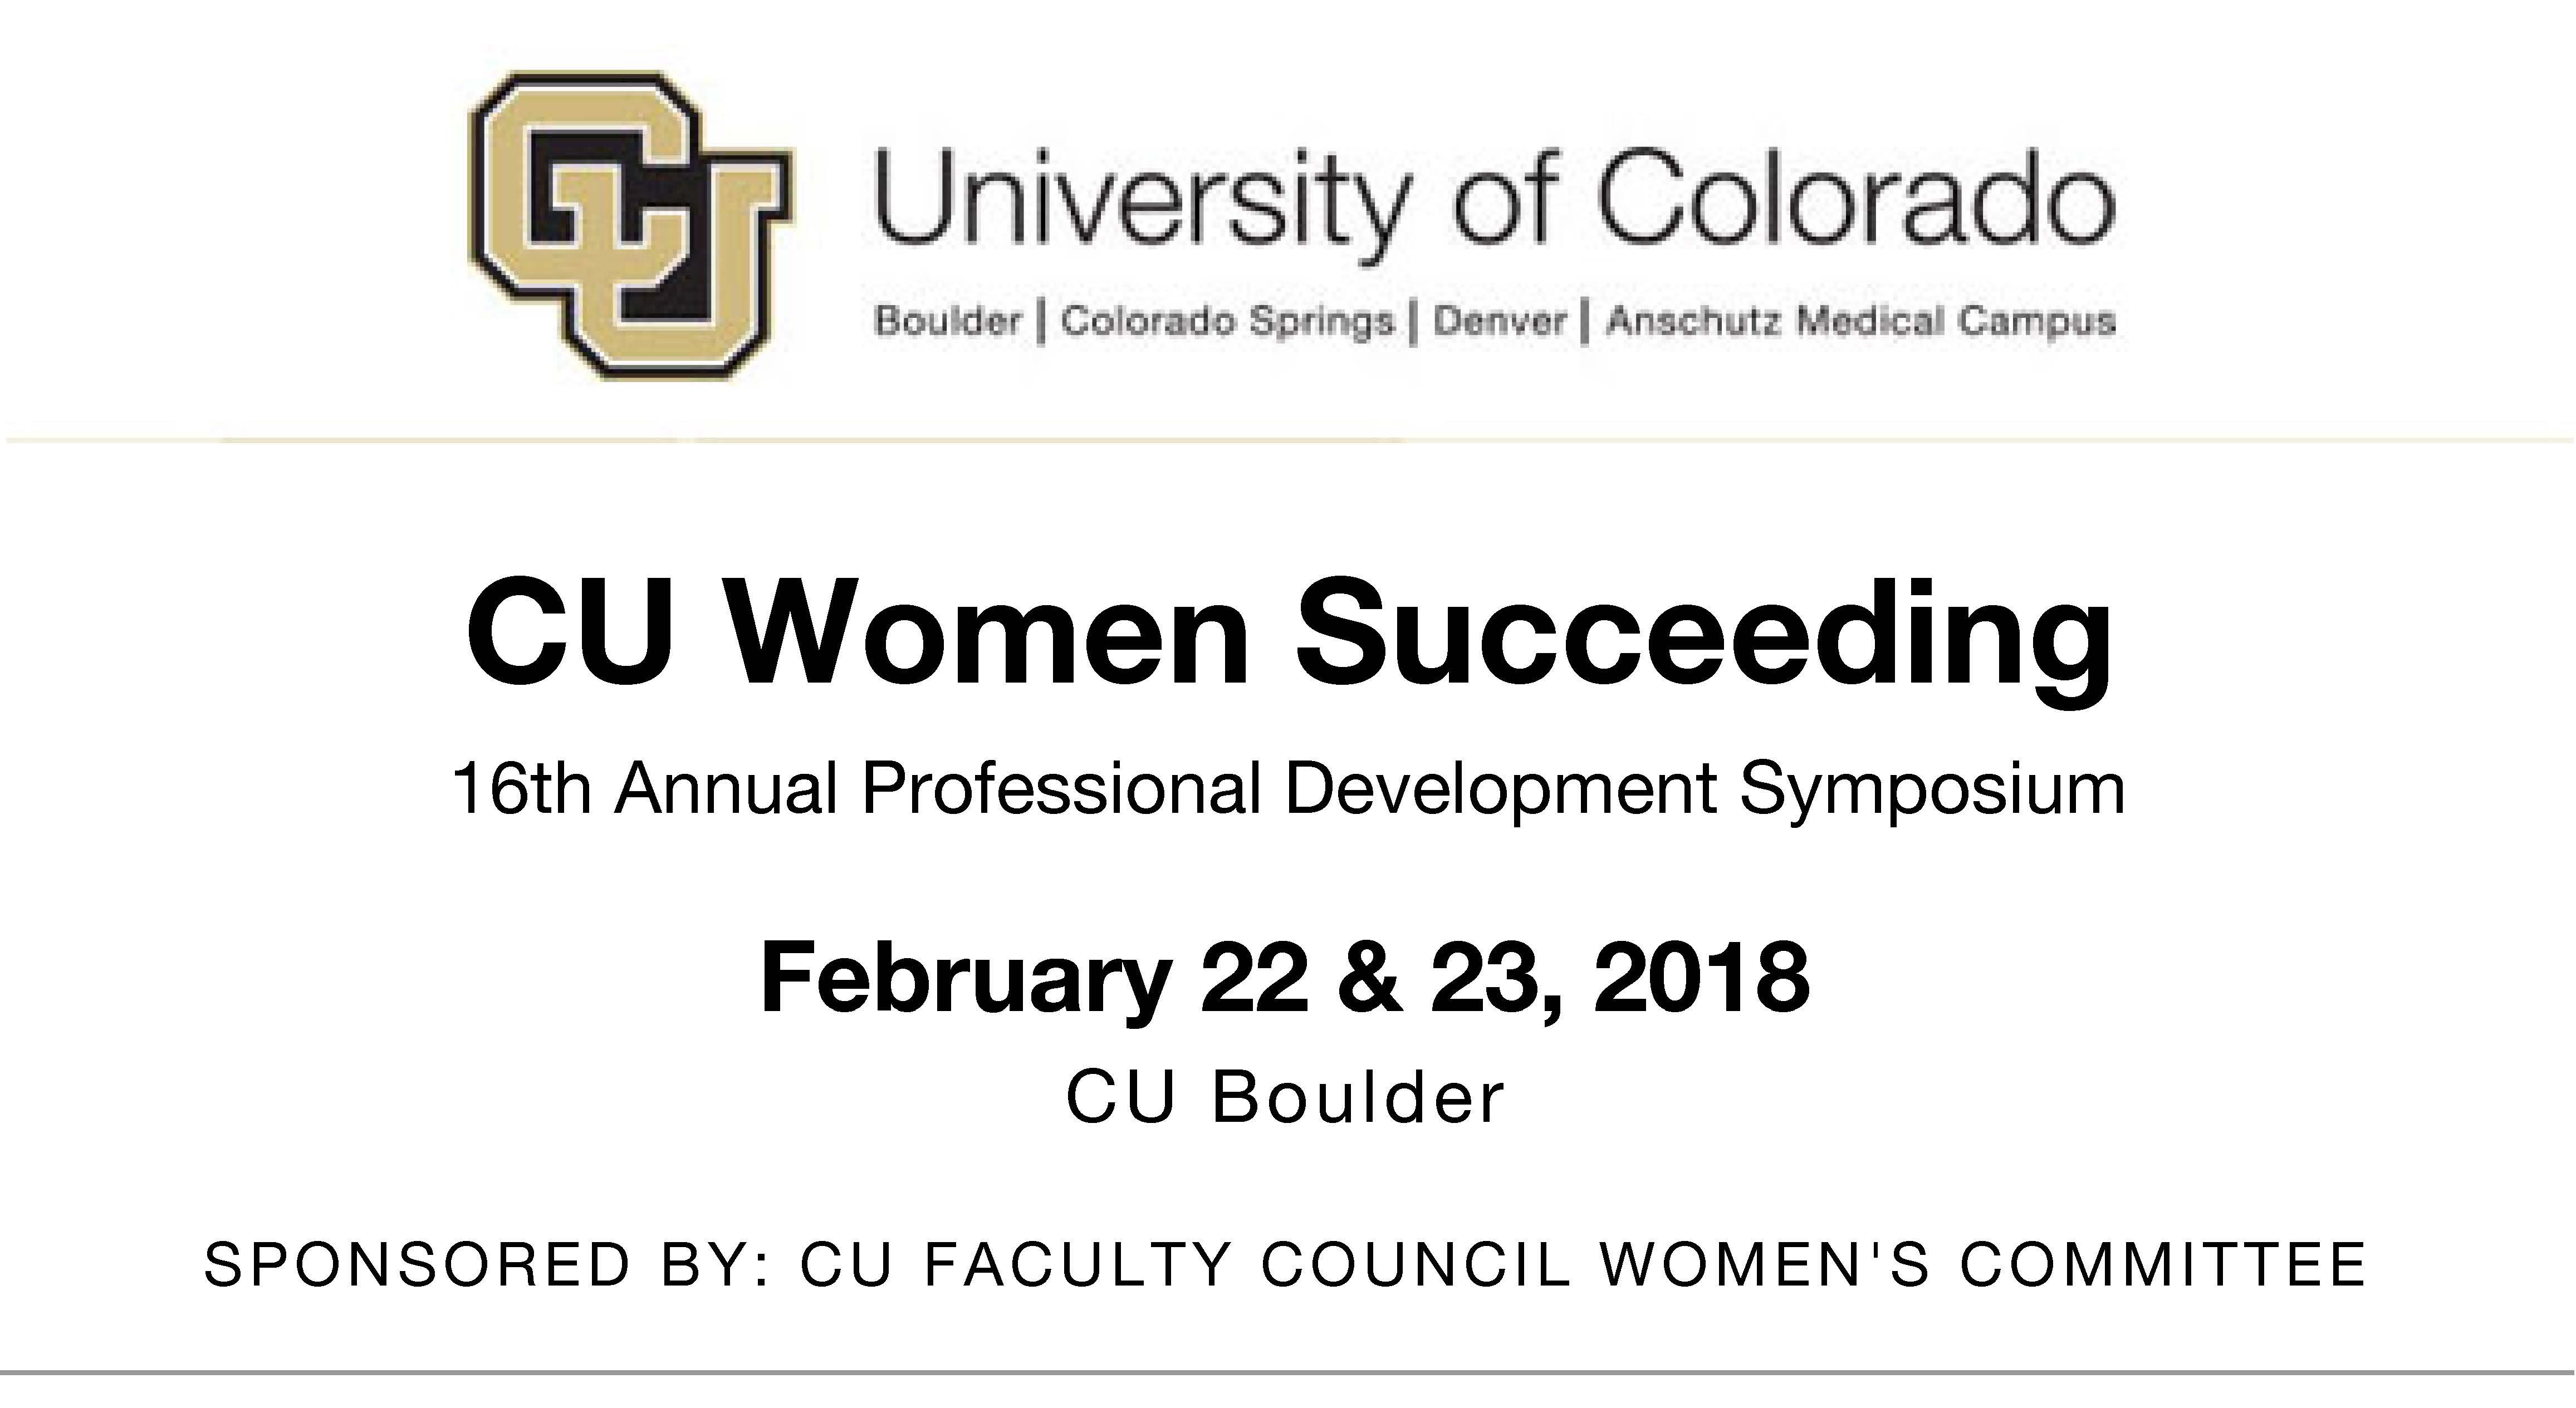 CU Women Succeeding Professional Development Symposium